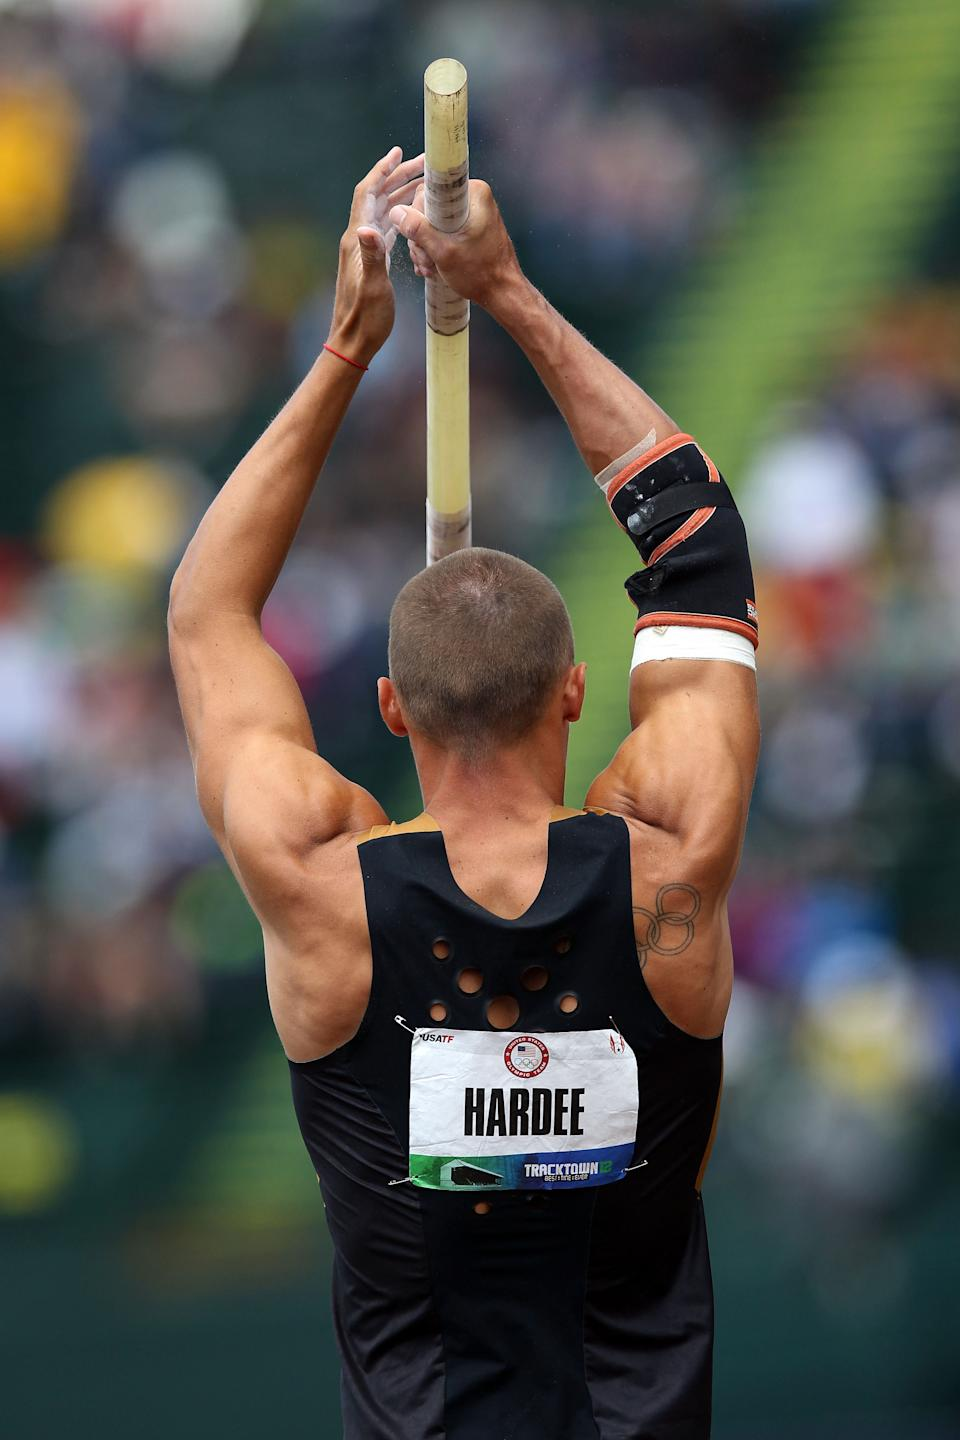 EUGENE, OR - JUNE 23: Trey Hardee competes in the men's decathlon pole vault during Day Two of the 2012 U.S. Olympic Track & Field Team Trials at Hayward Field on June 23, 2012 in Eugene, Oregon. (Photo by Christian Petersen/Getty Images)